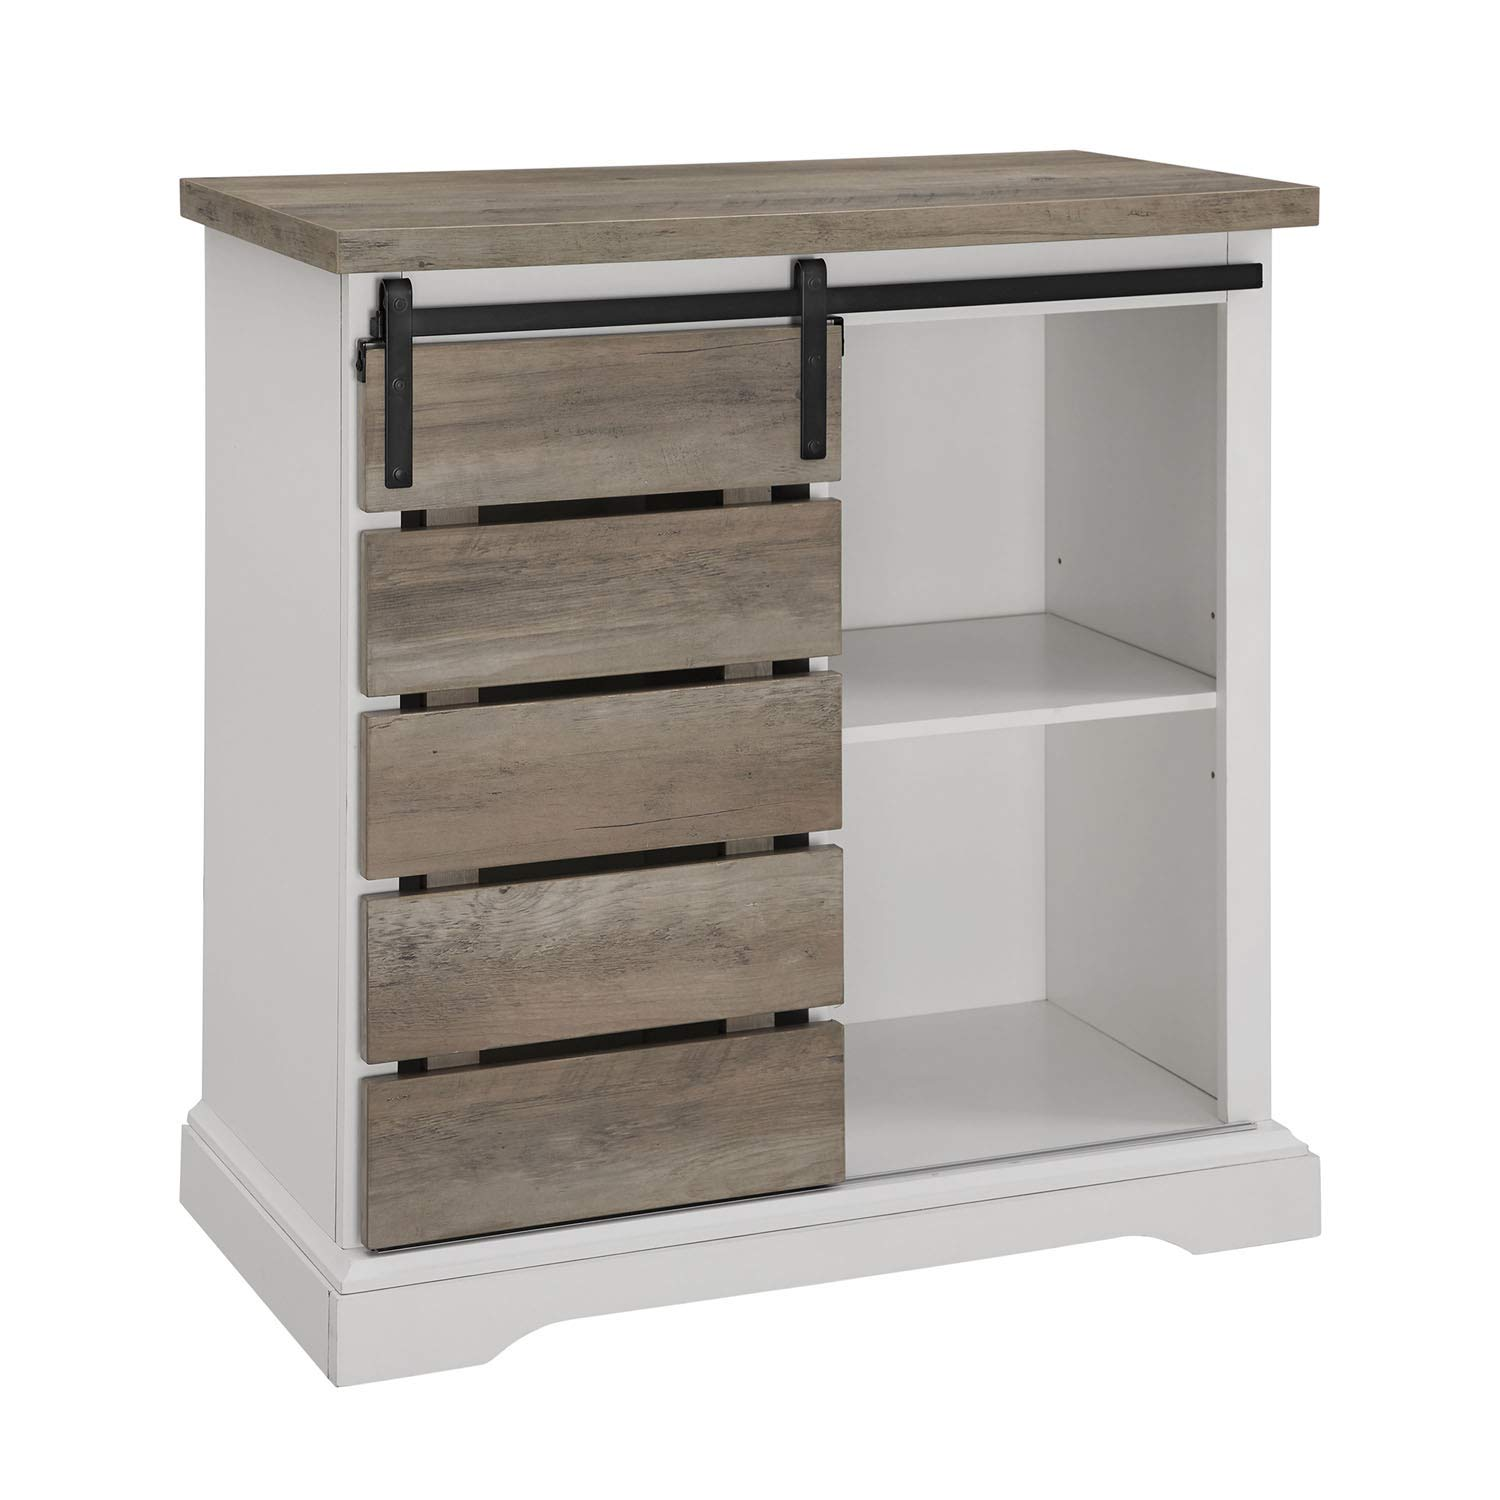 "Walker Edison Furniture Company 32"" Rustic Farmhouse TV Stand - Solid White and Grey Wash"